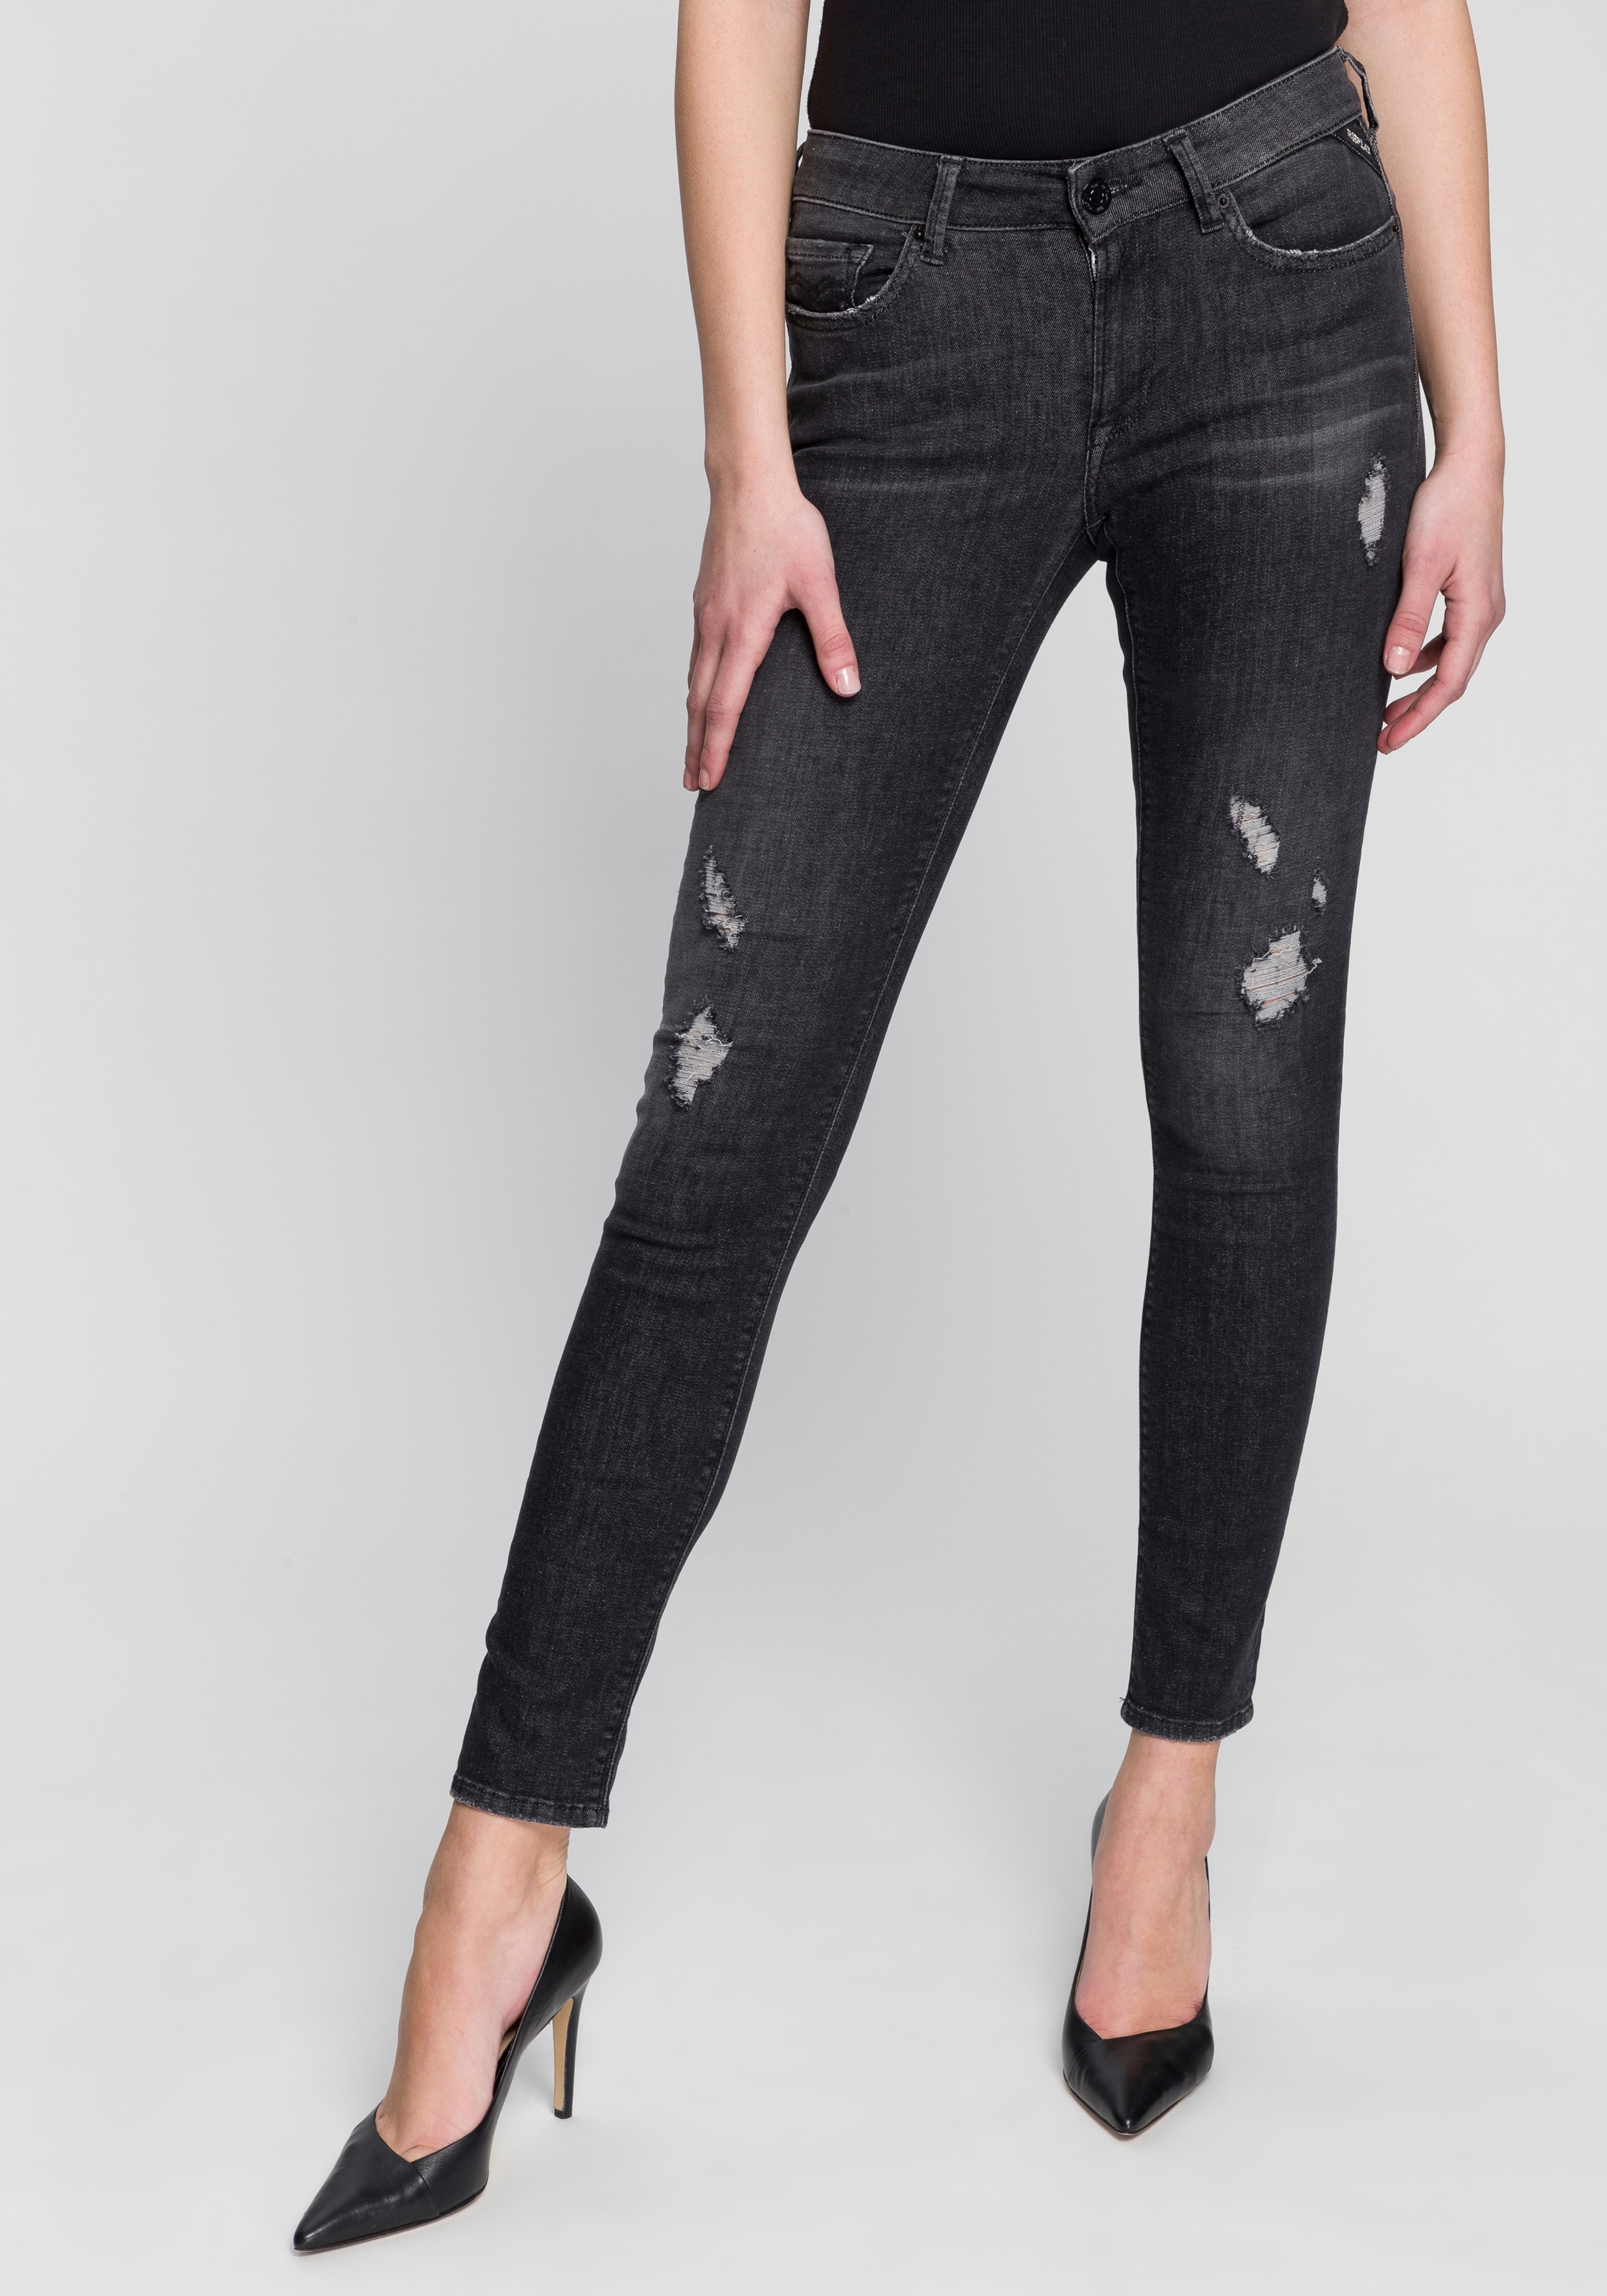 replay -  Skinny-fit-Jeans New Luz, im Five-Pocket-Style